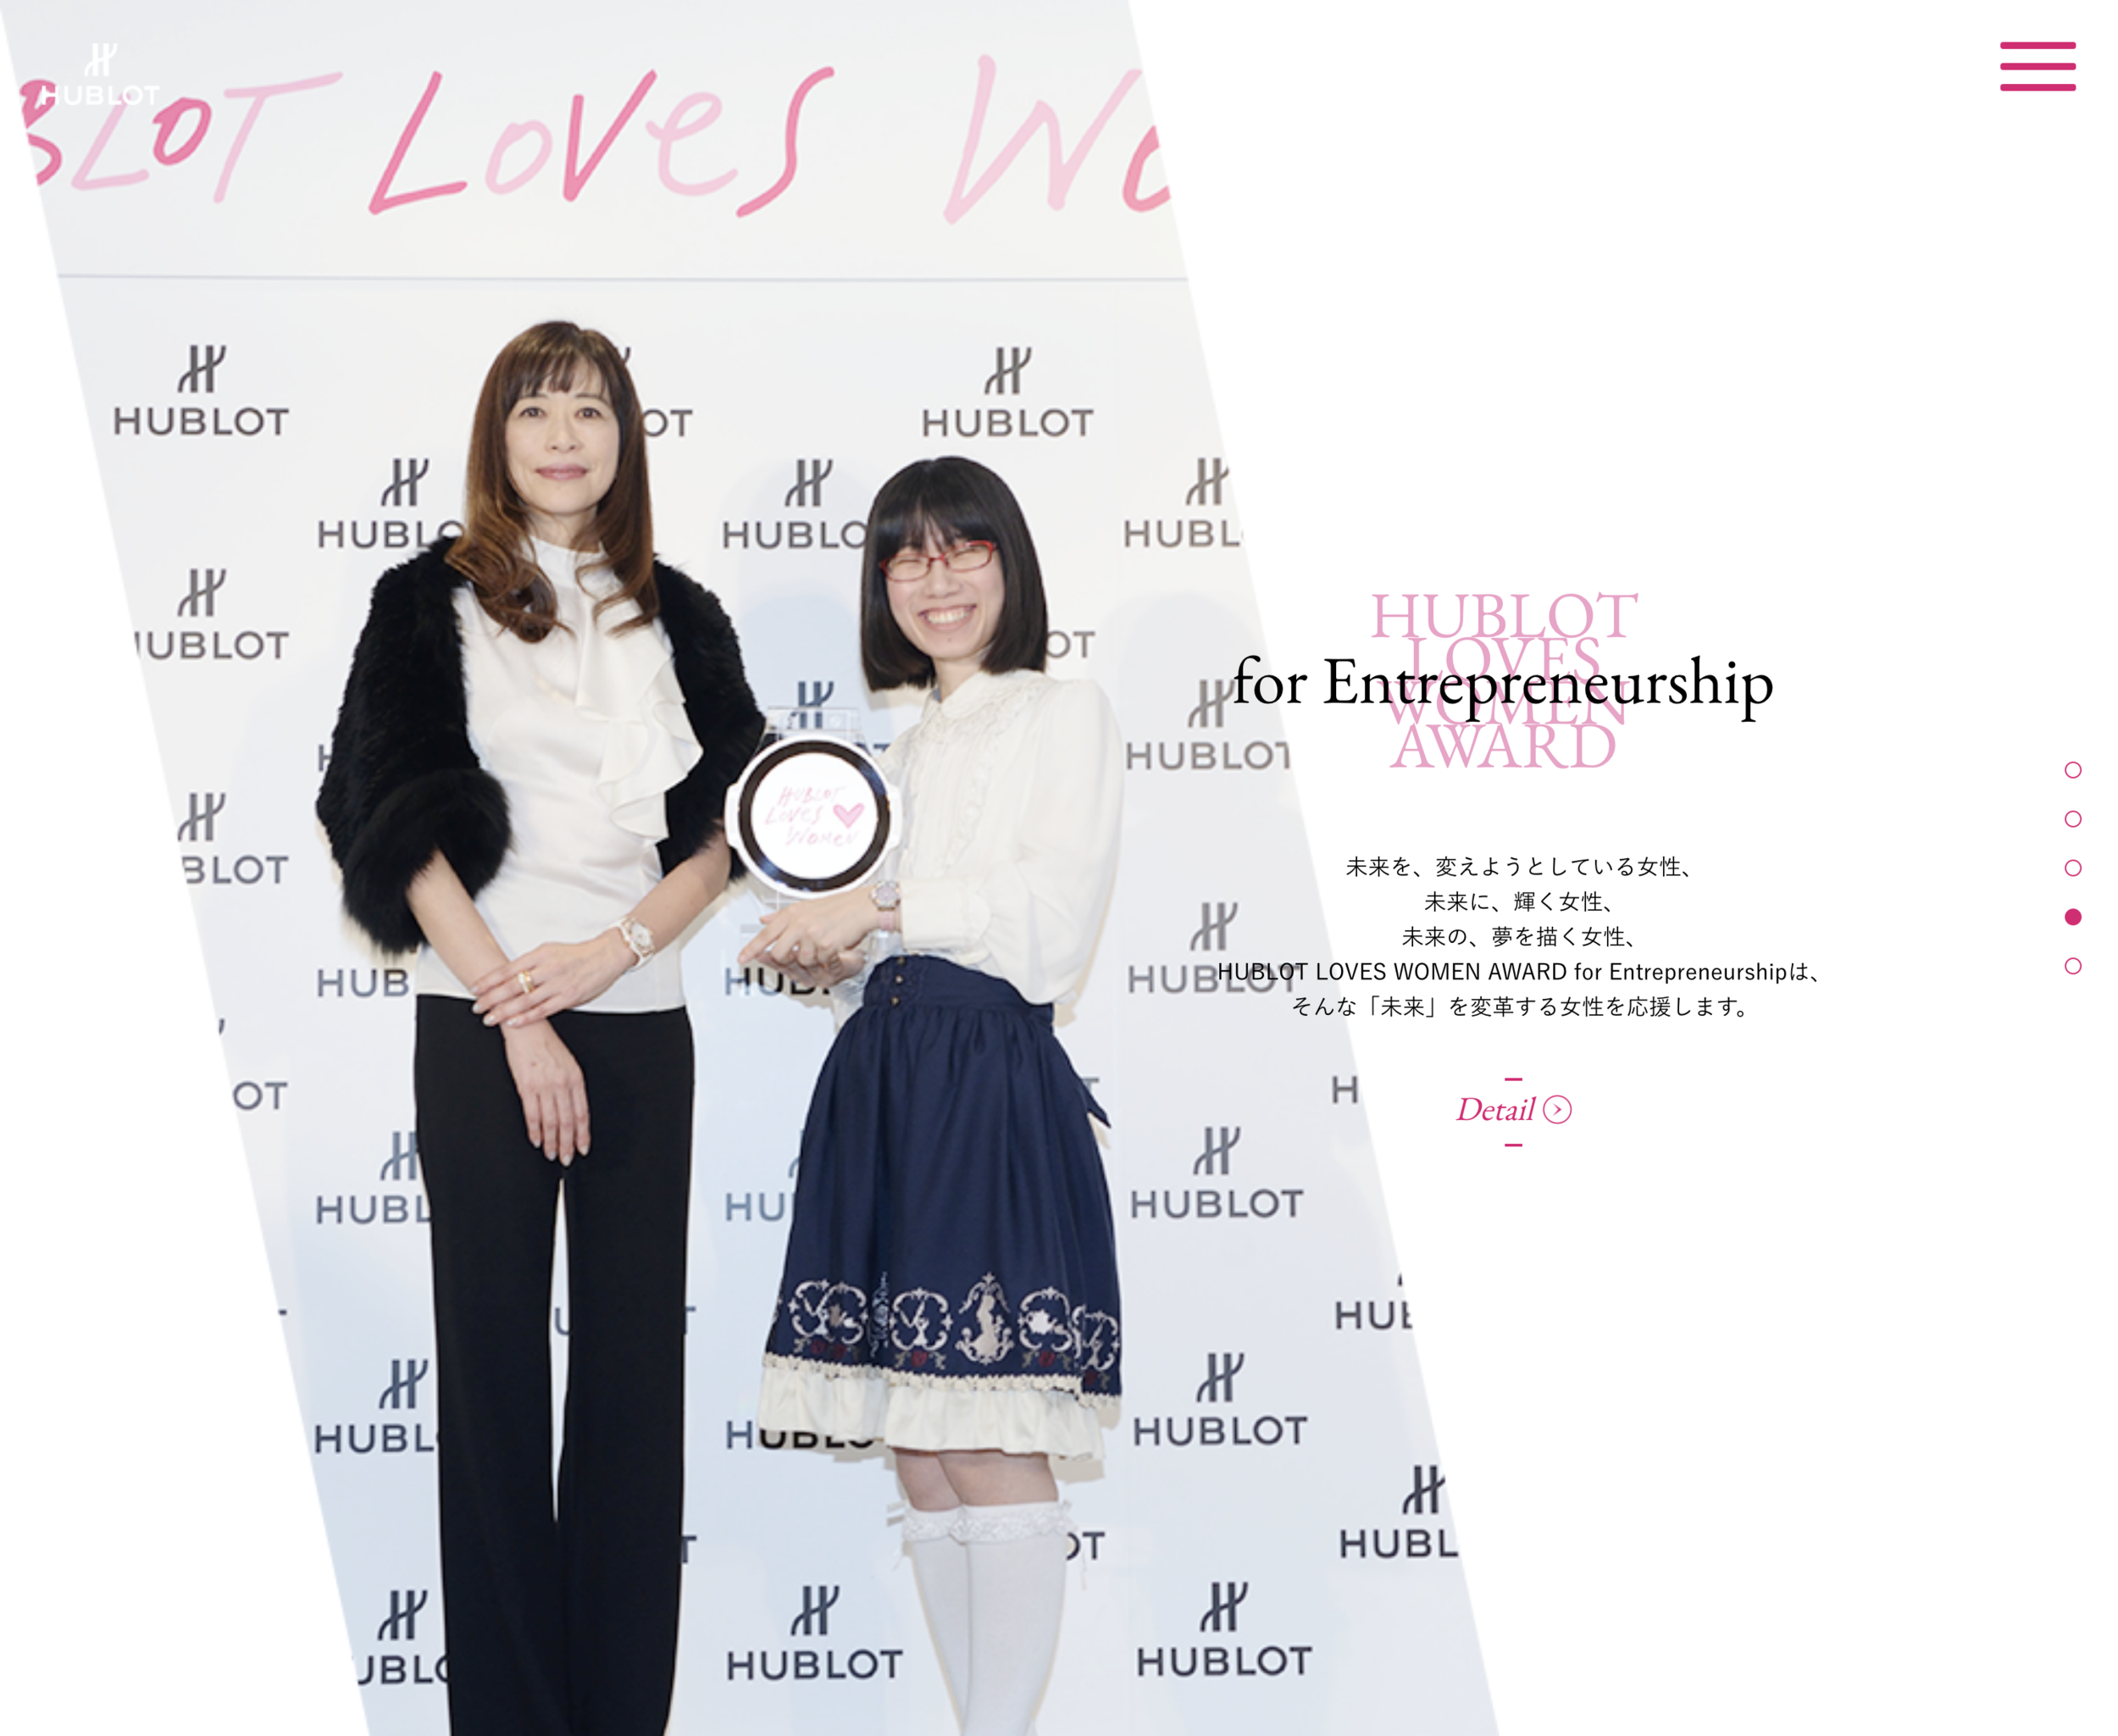 FireShot Capture 527 - HUBLOT Loves WOMEN|Hublot Loves Women Award - http___hublotloveswomen.com_.png